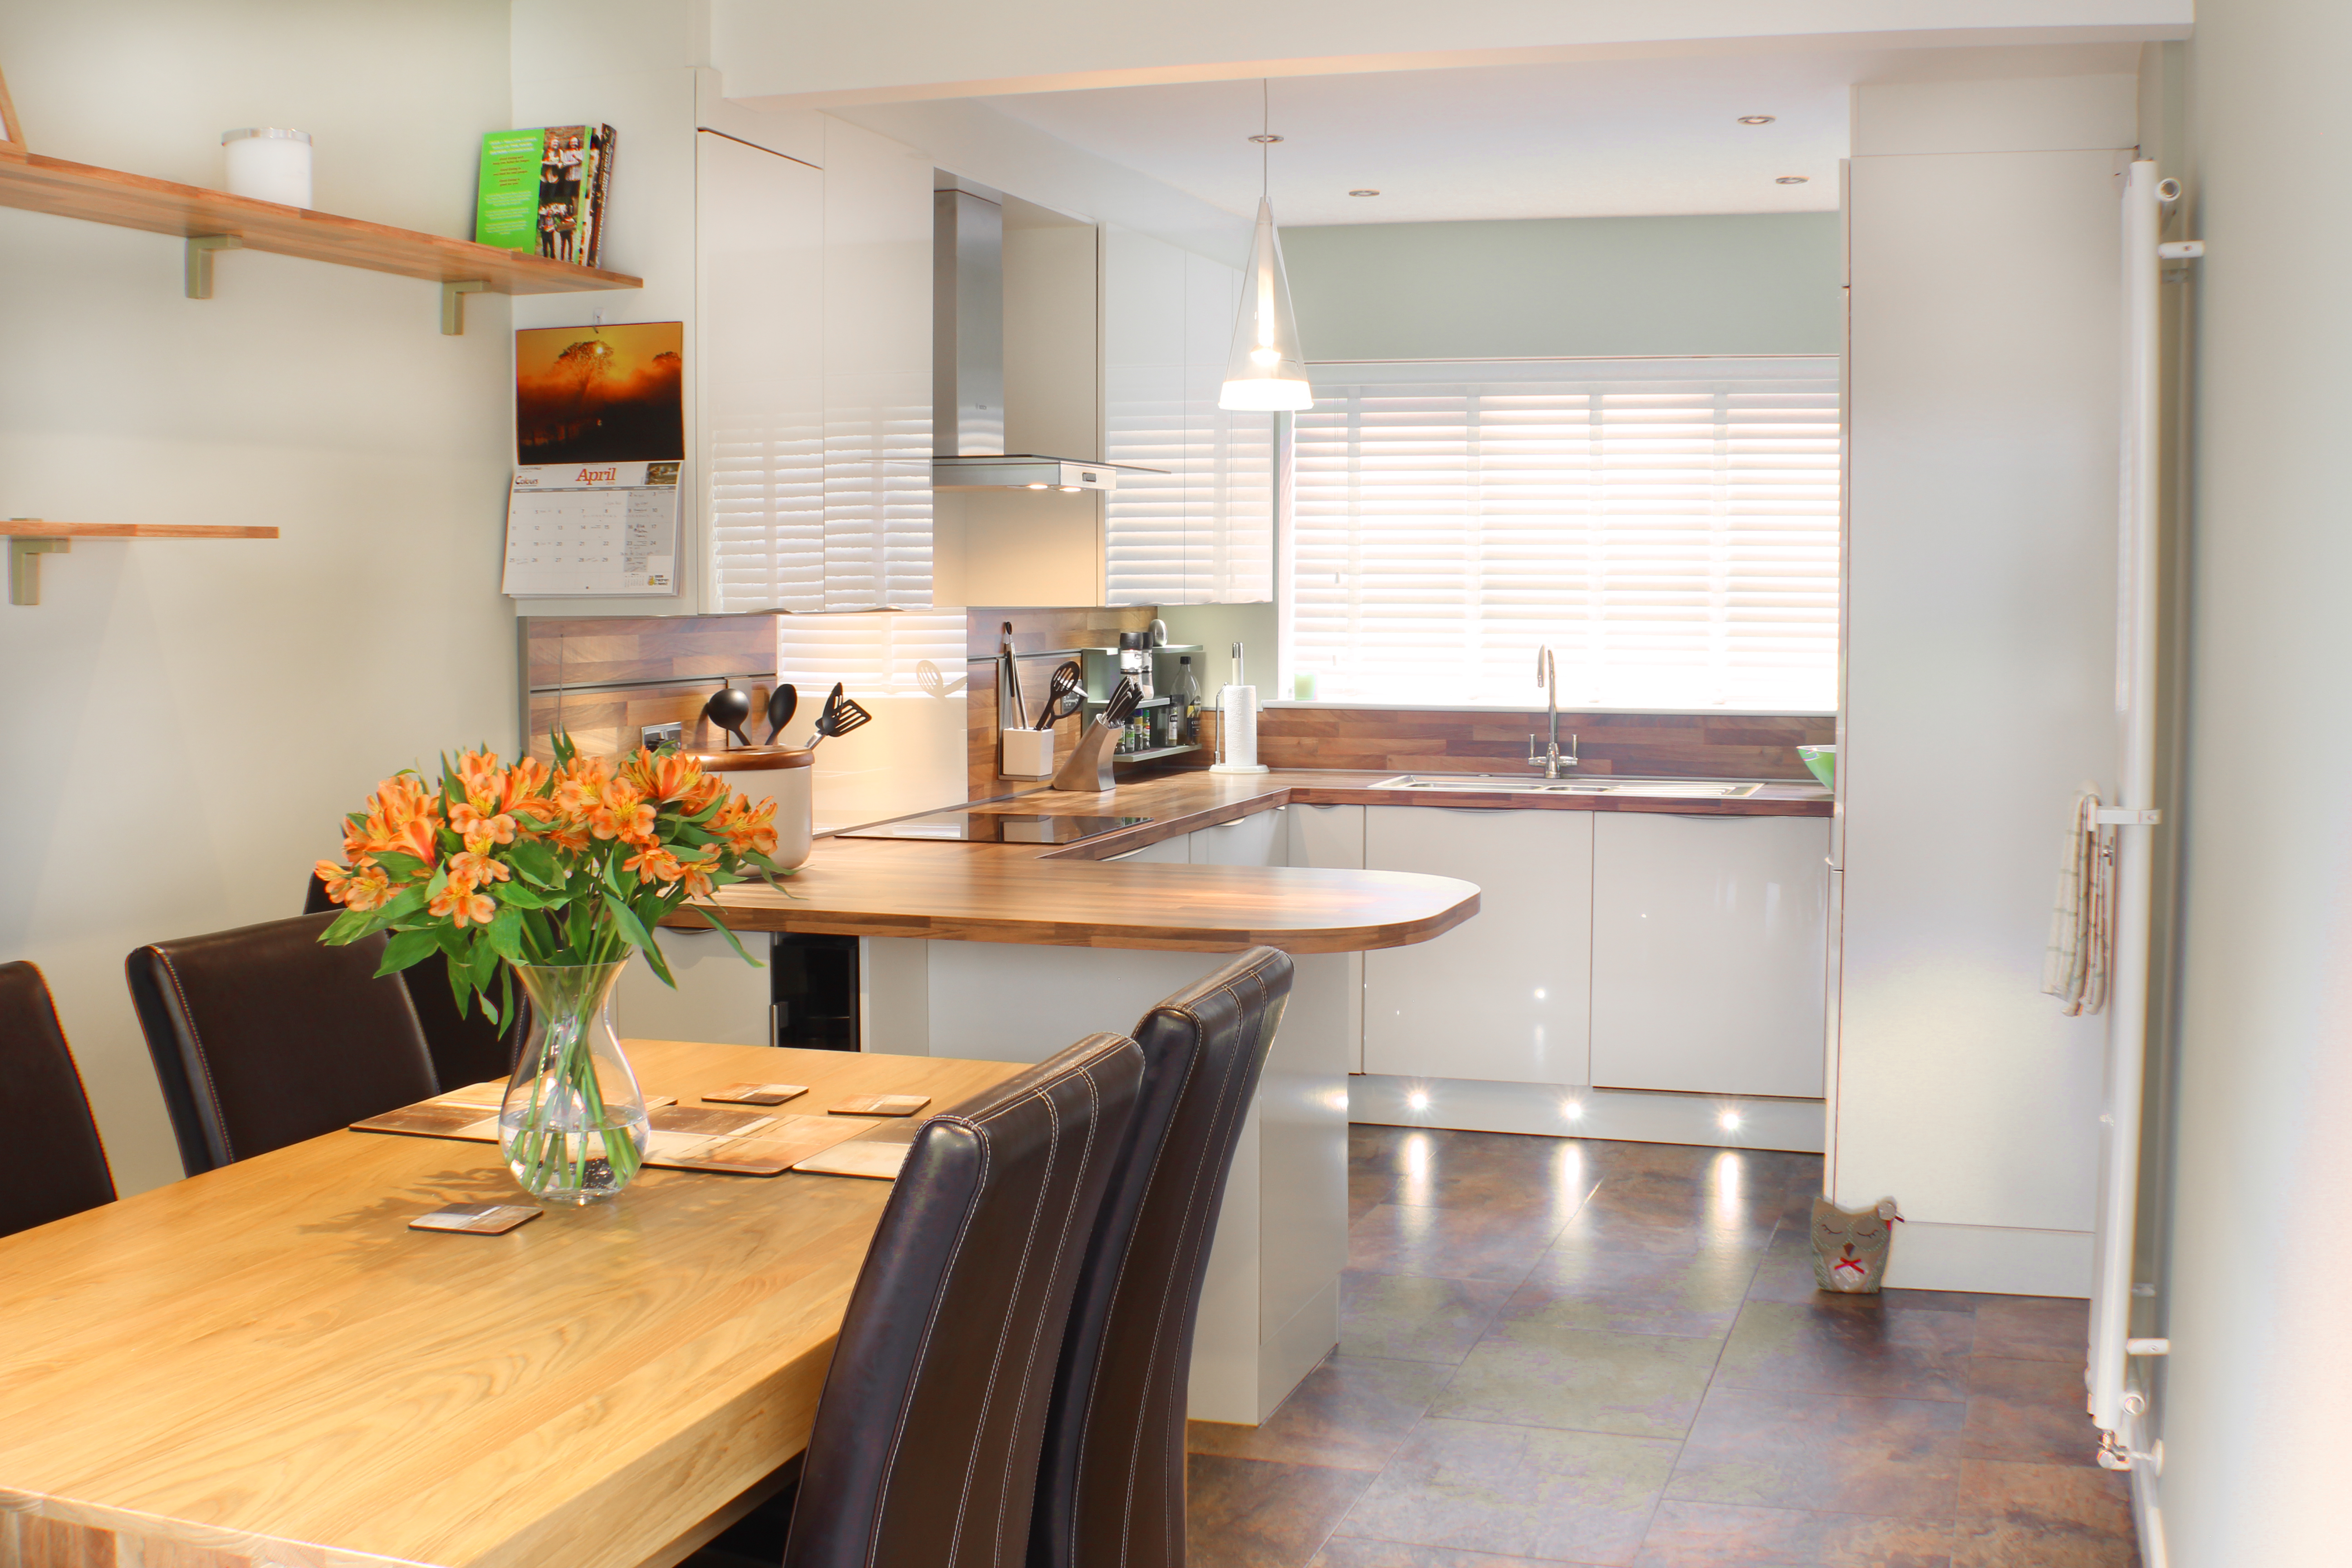 Queenline bolton fitted kitchen ideas fitted kitchen for Fitted kitchen designs